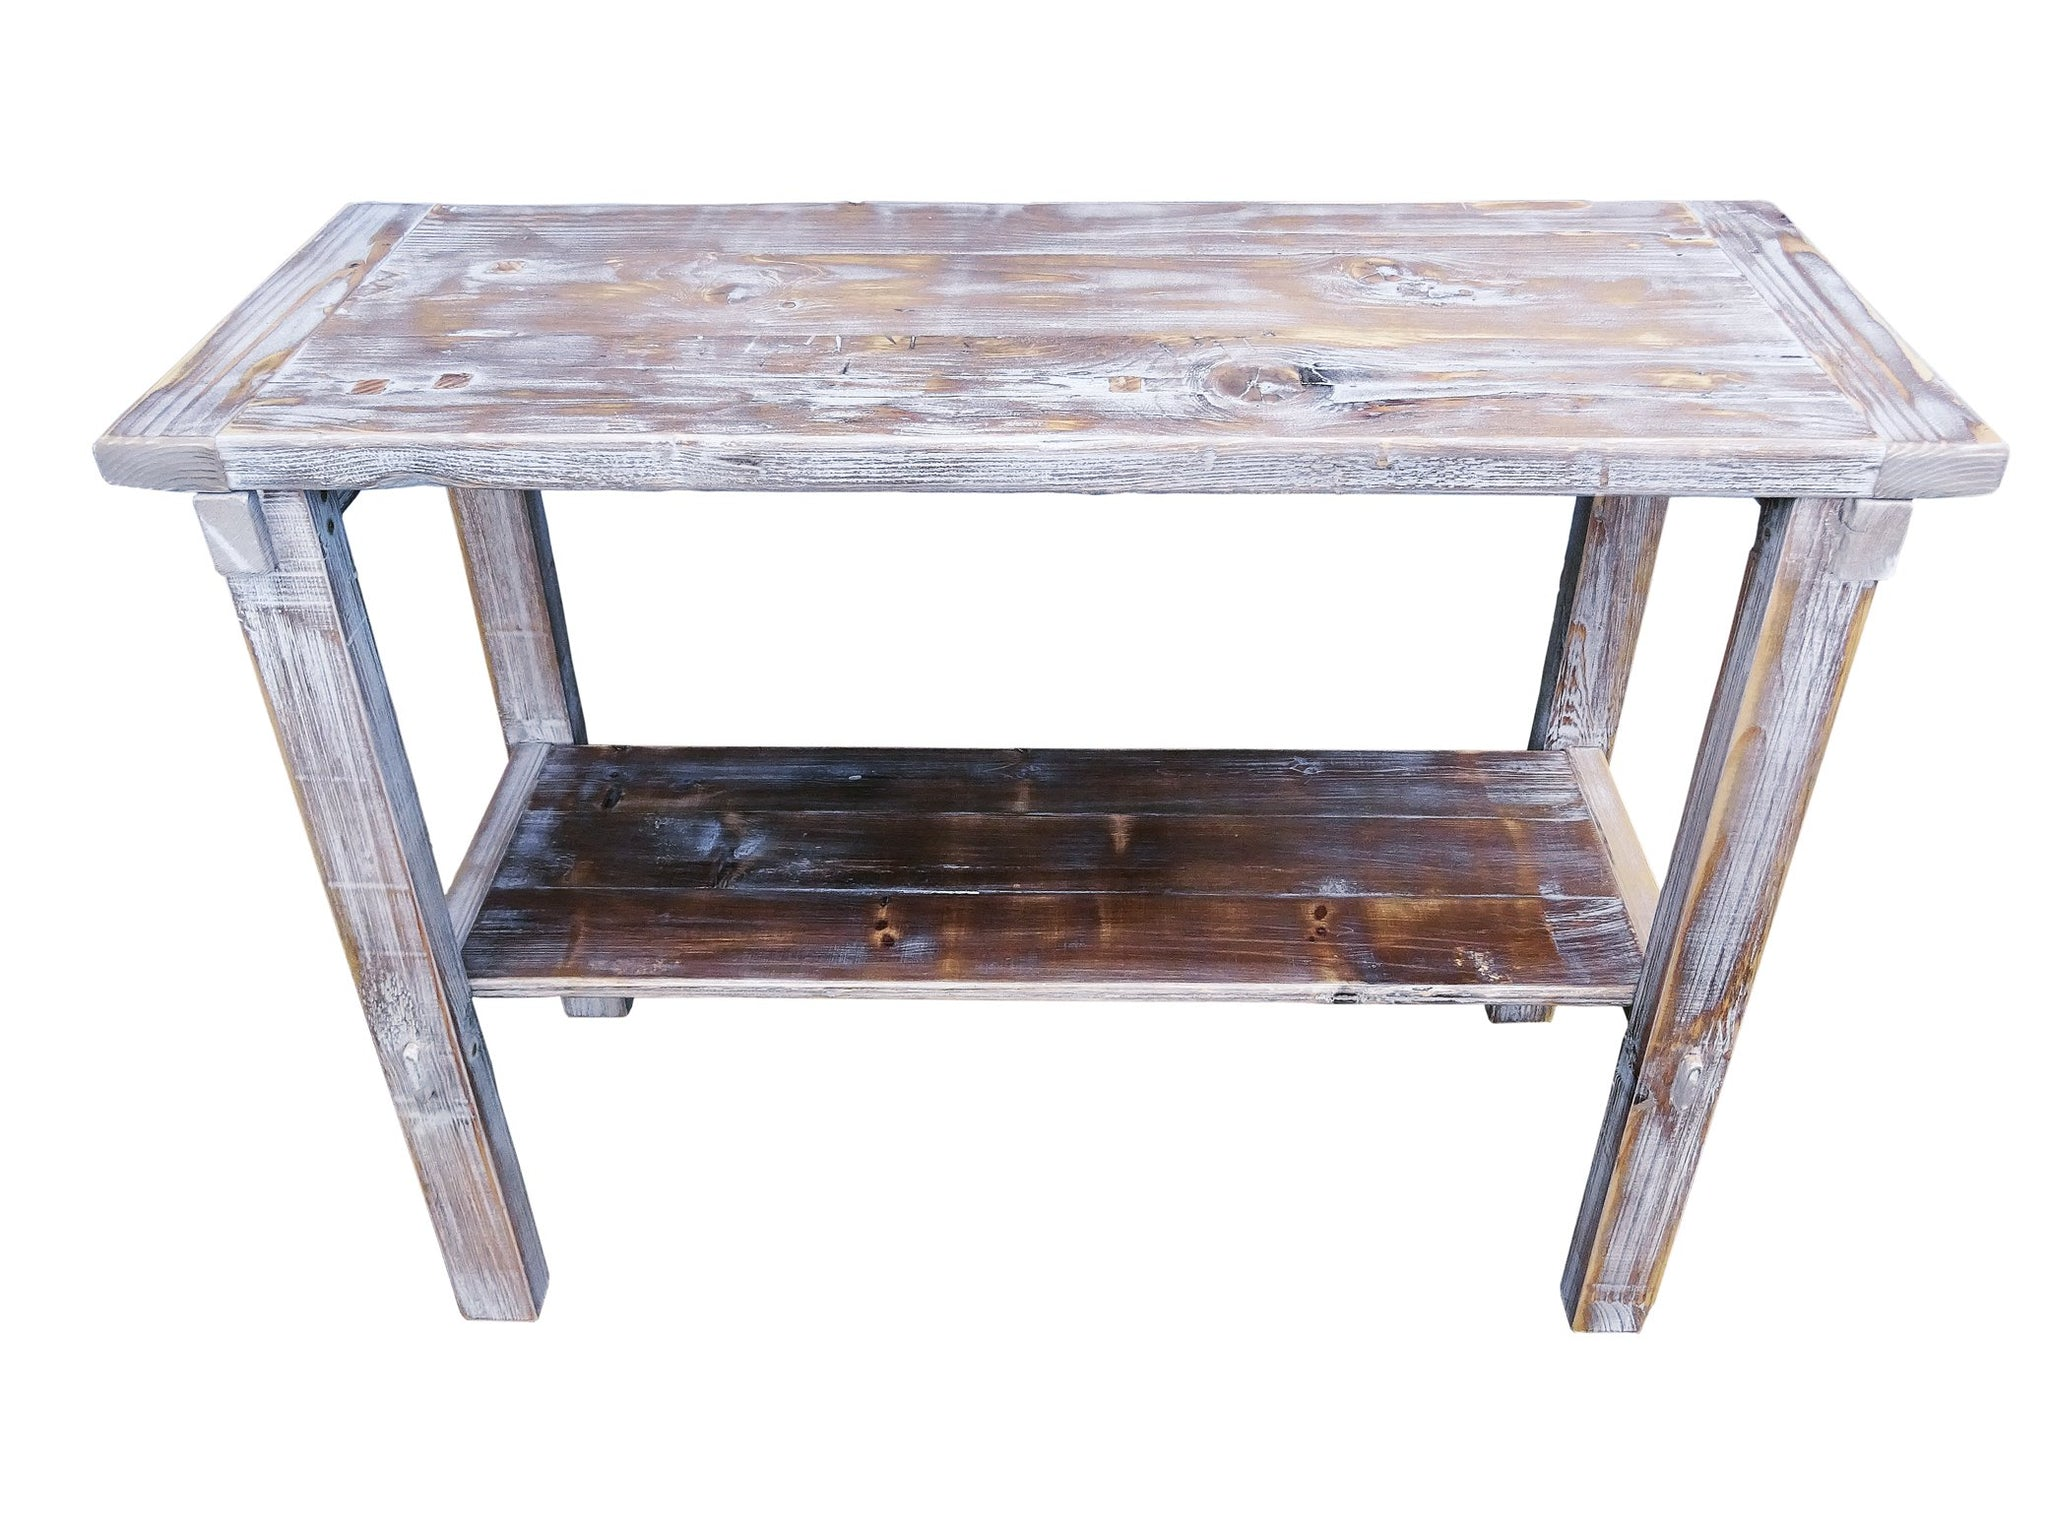 Reclaimed Distressed Pine Wood Whitewashed Console Side Table By Darvo ...